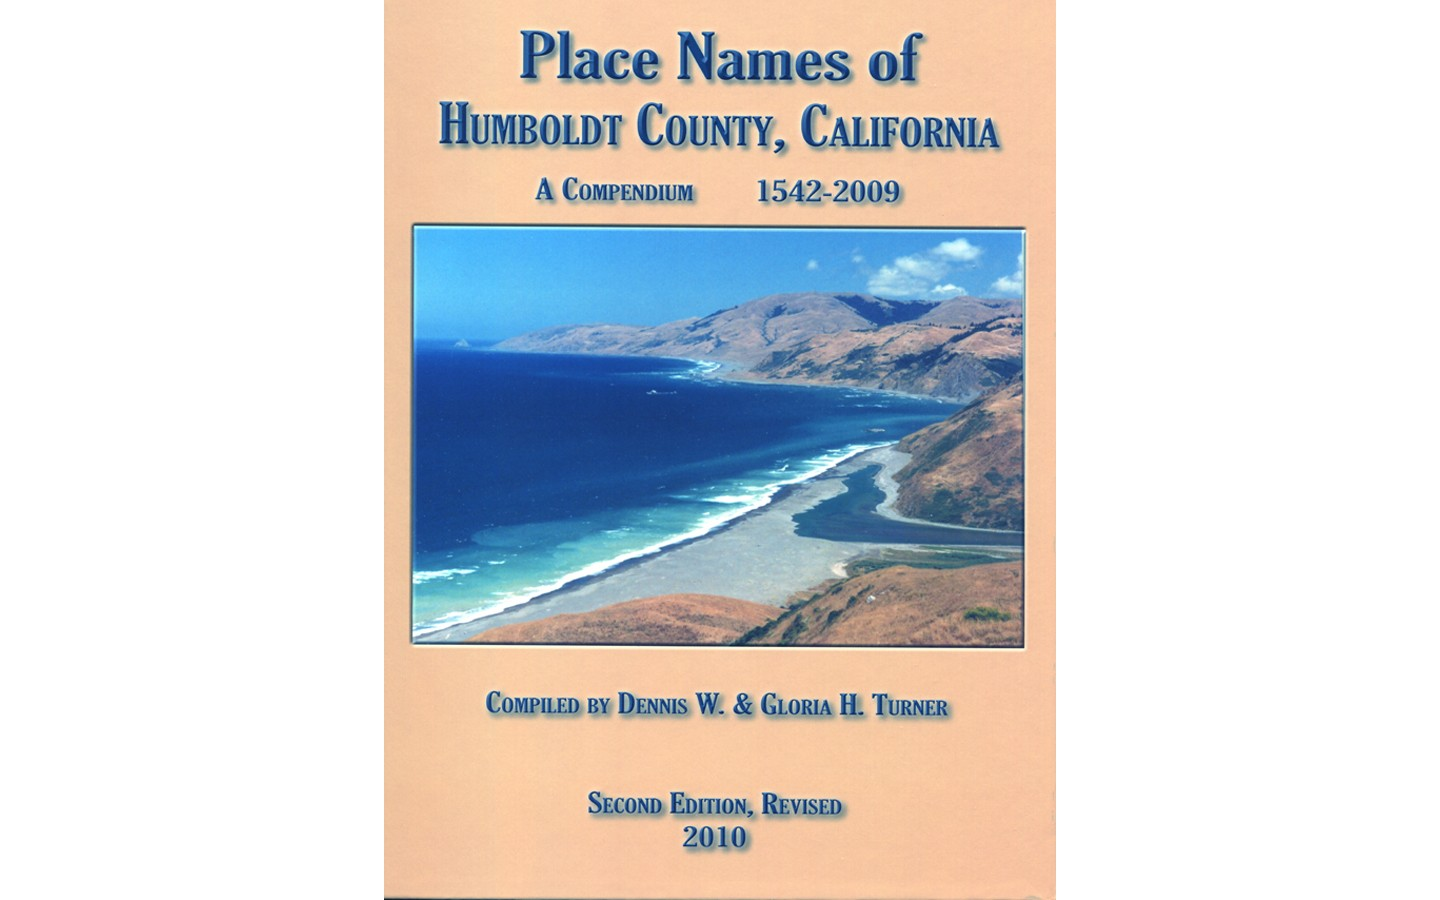 Place Names of Humboldt County, California: A Compendium 1542 - 2009 - BY DENNIS W. TURNER AND GLORIA H. TURNER